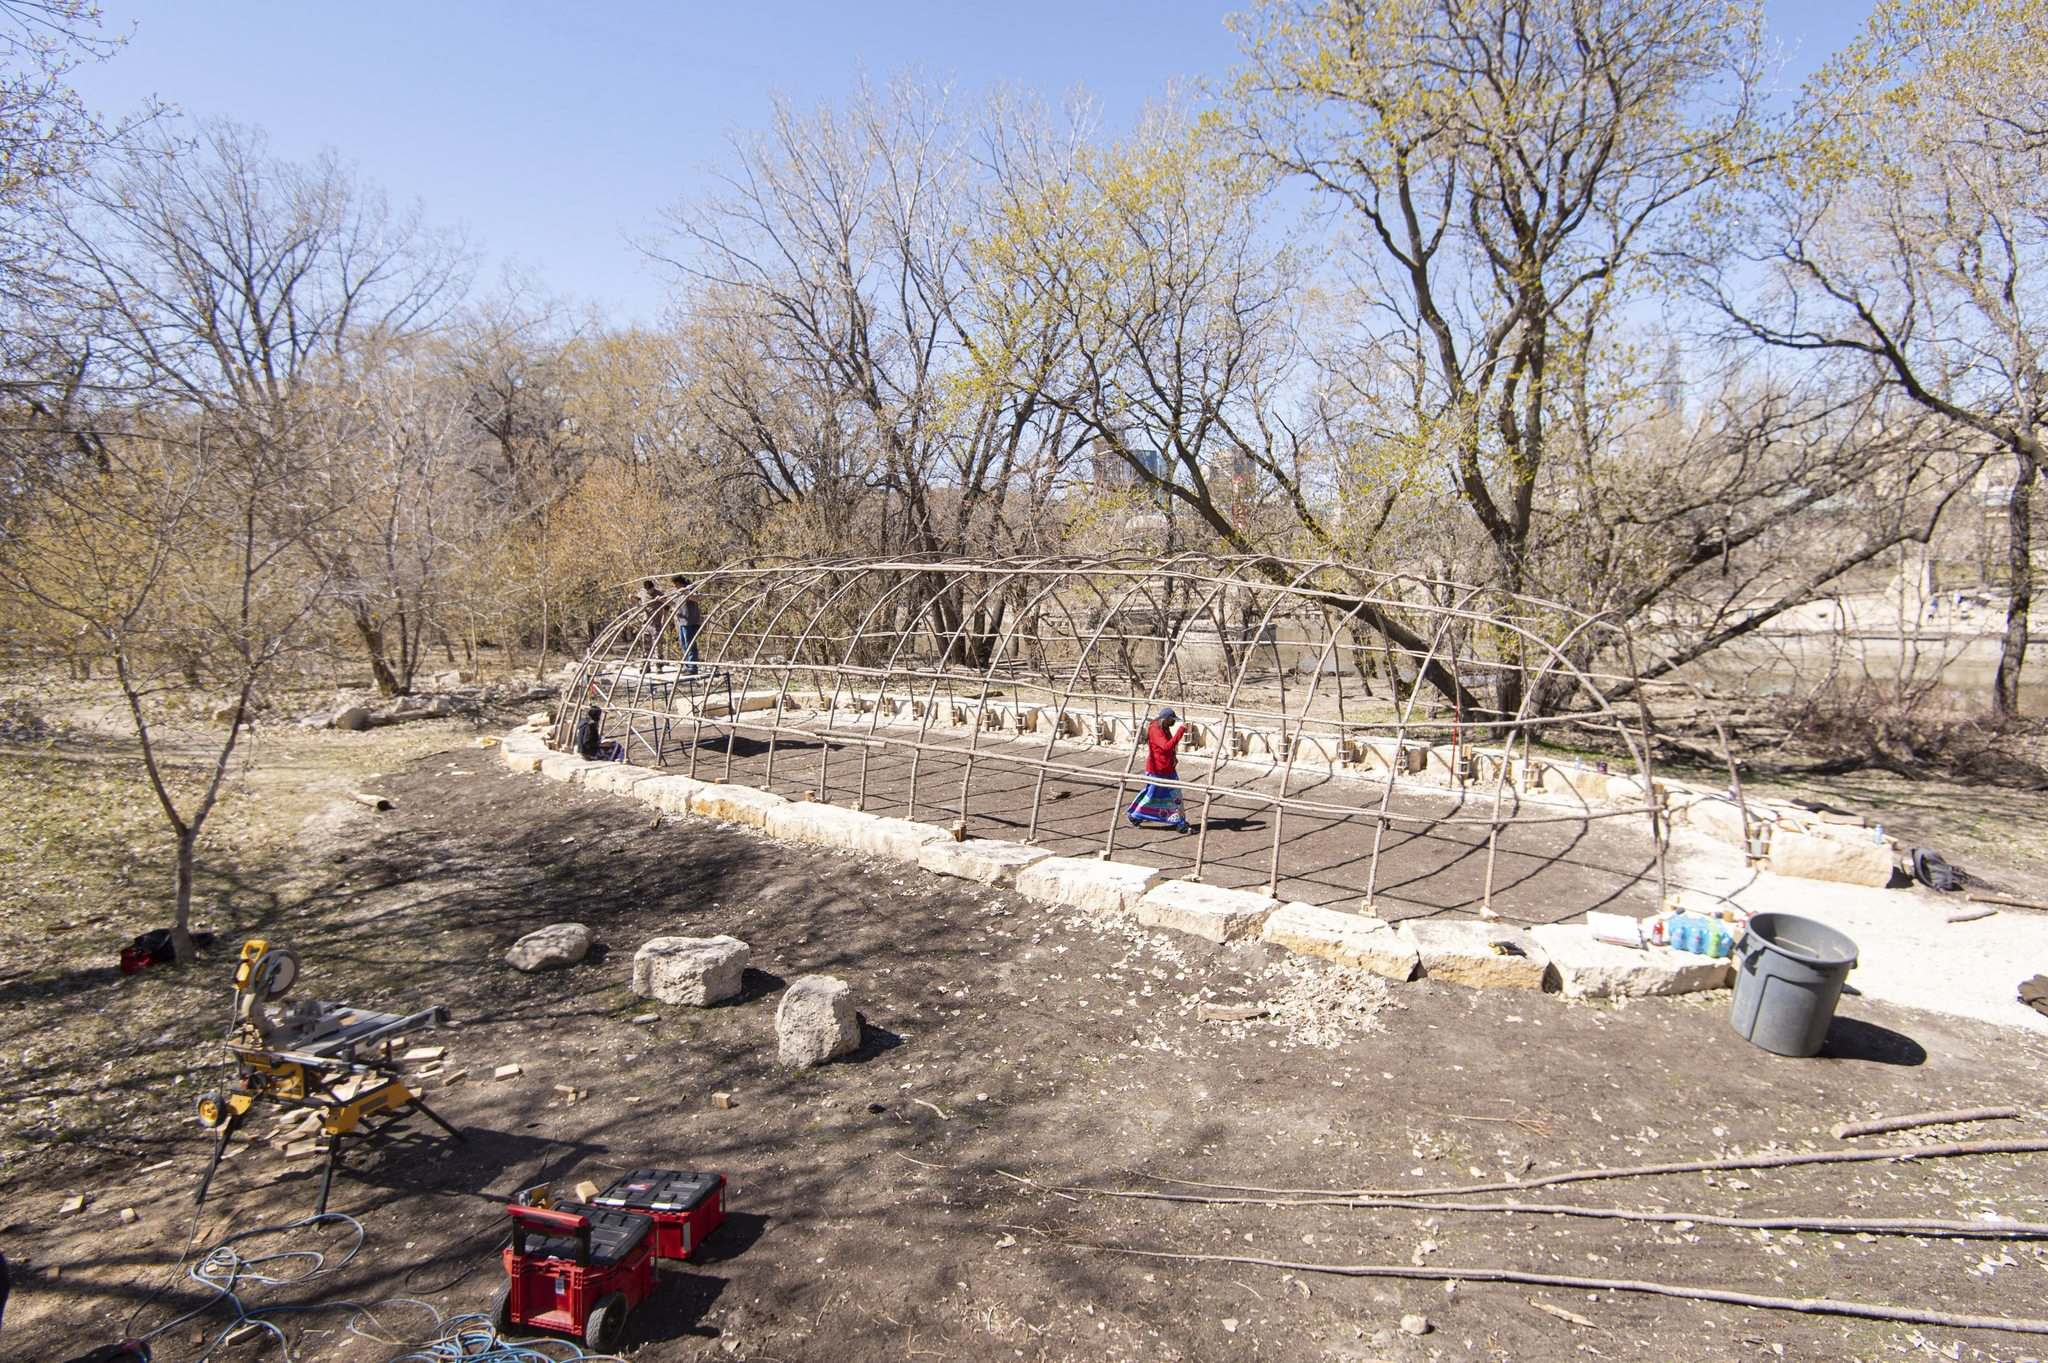 This week, for the first time in over two centuries, a lodge is being built at Nestowaya (formerly named South Point of The Forks).